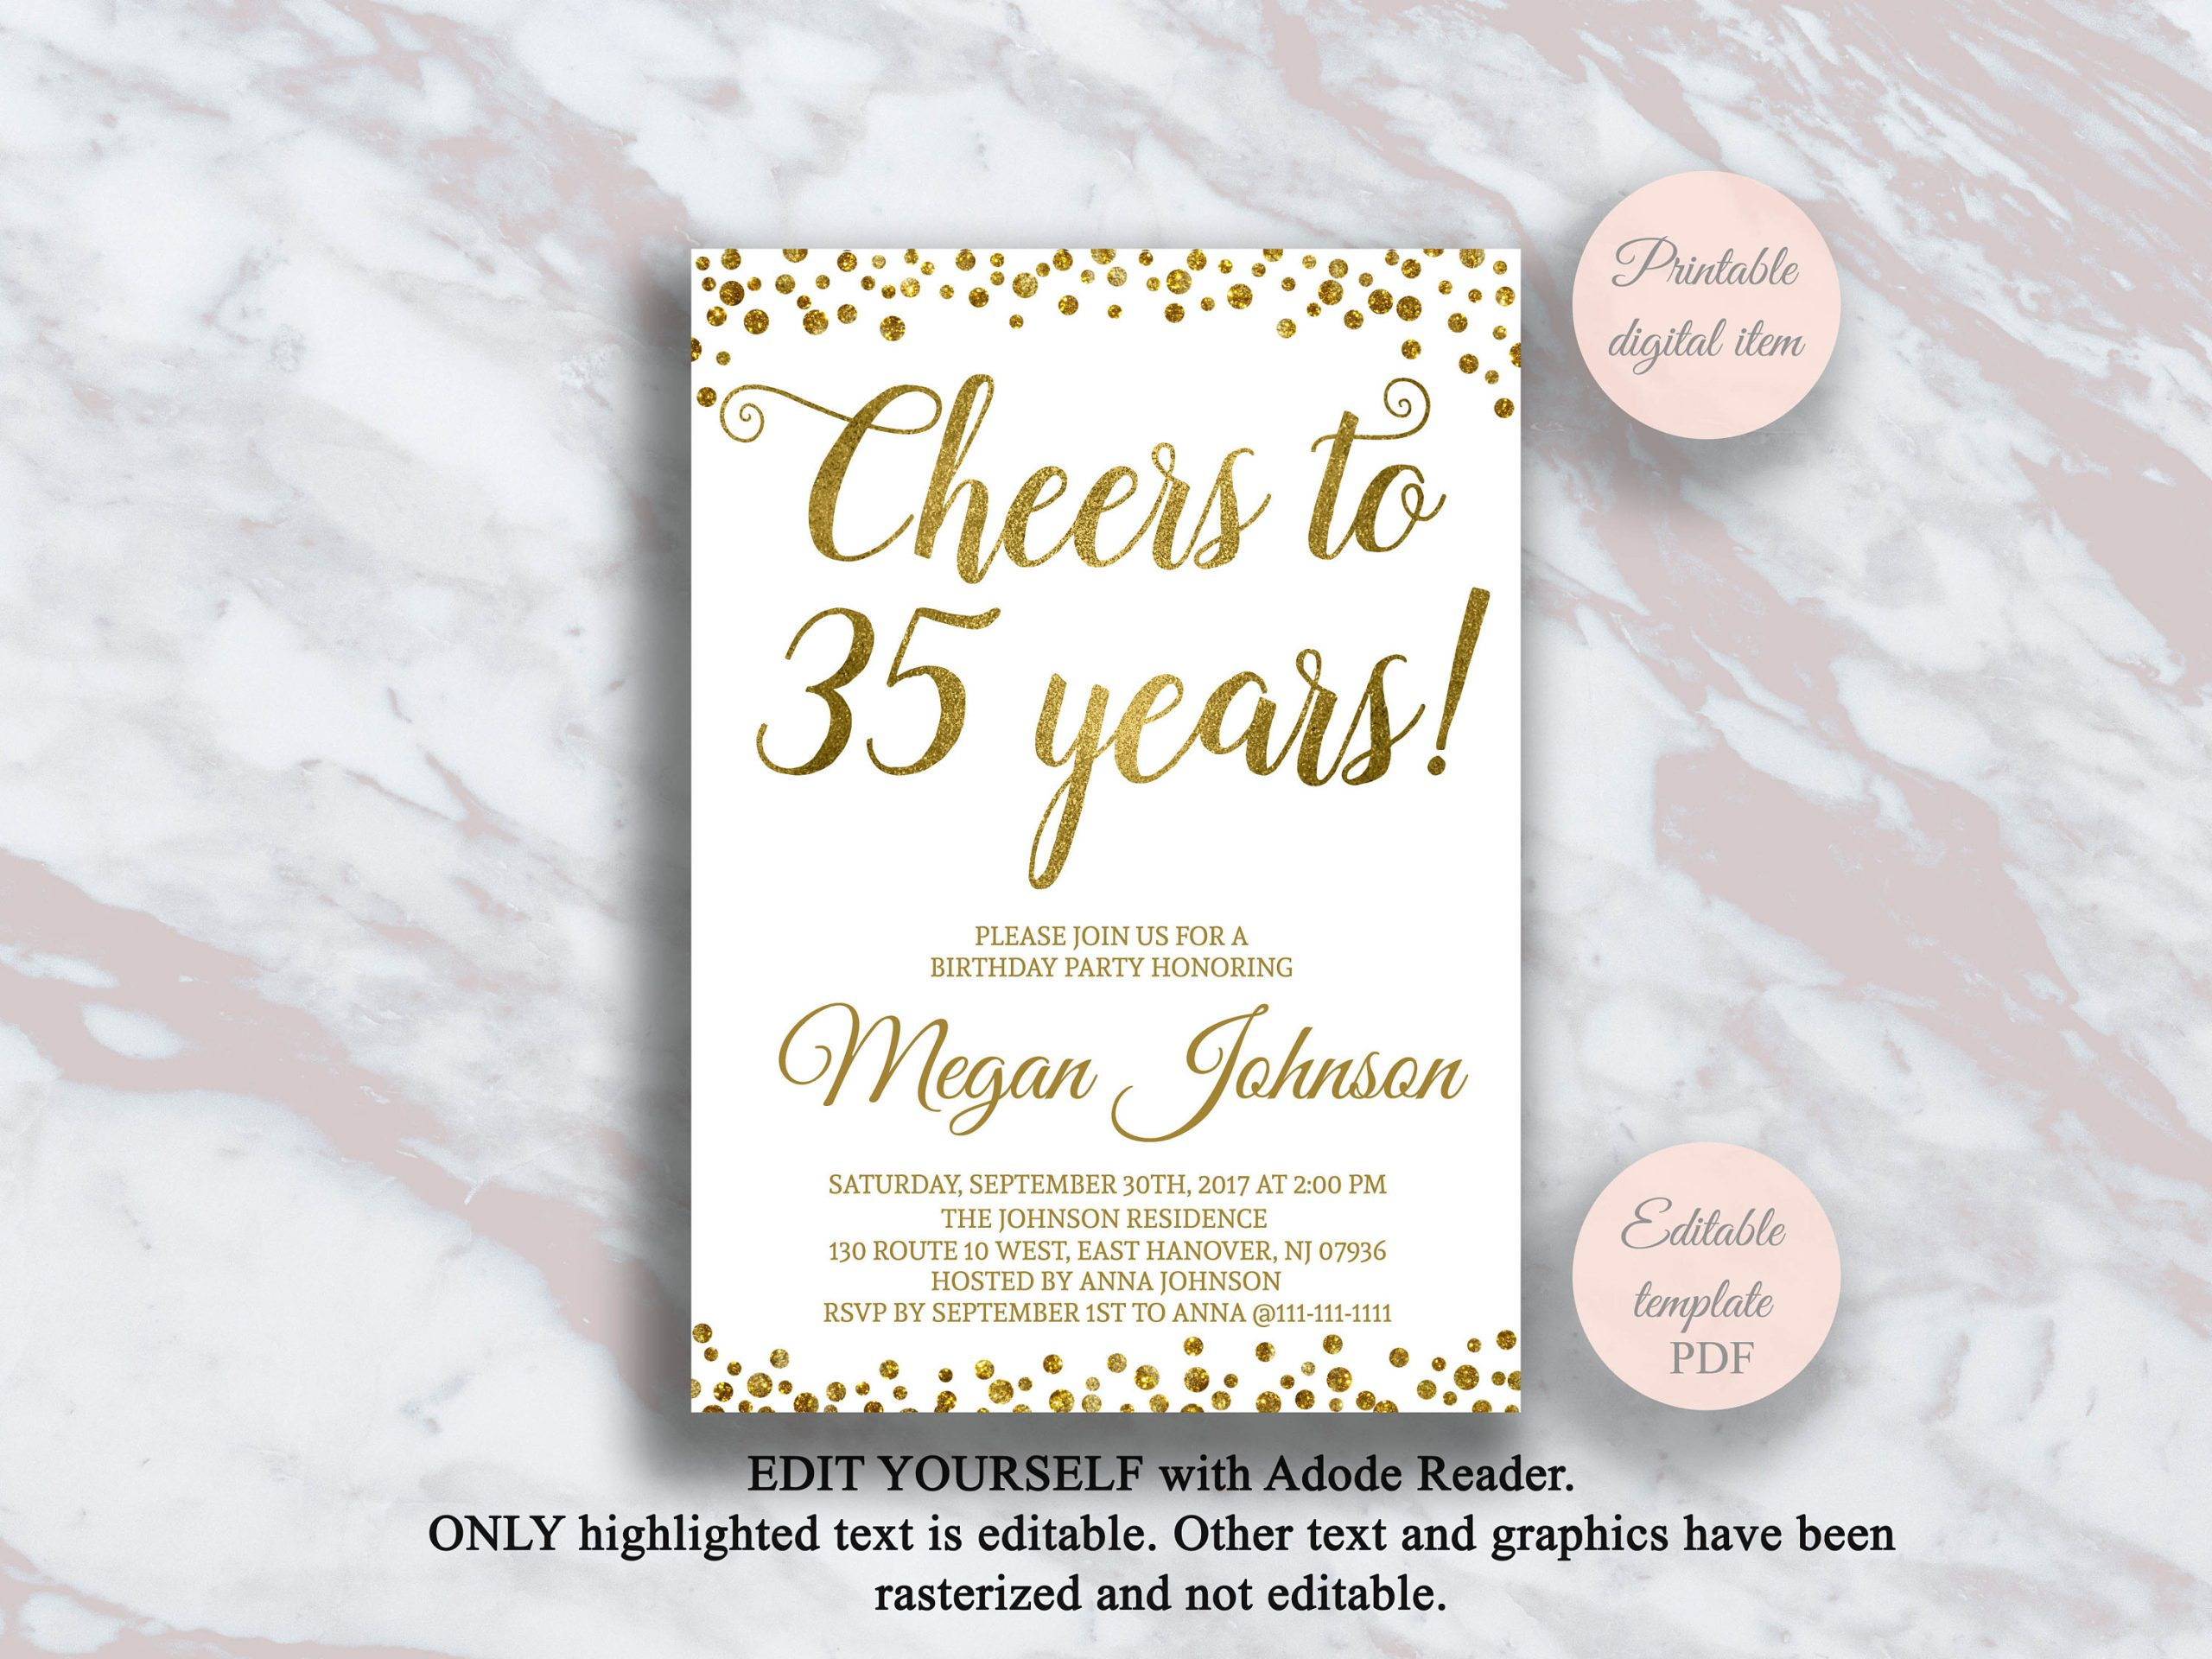 Editable 35Th Birthday Invitation Cheers To 35 Years Gold à Invitation 35 Ans